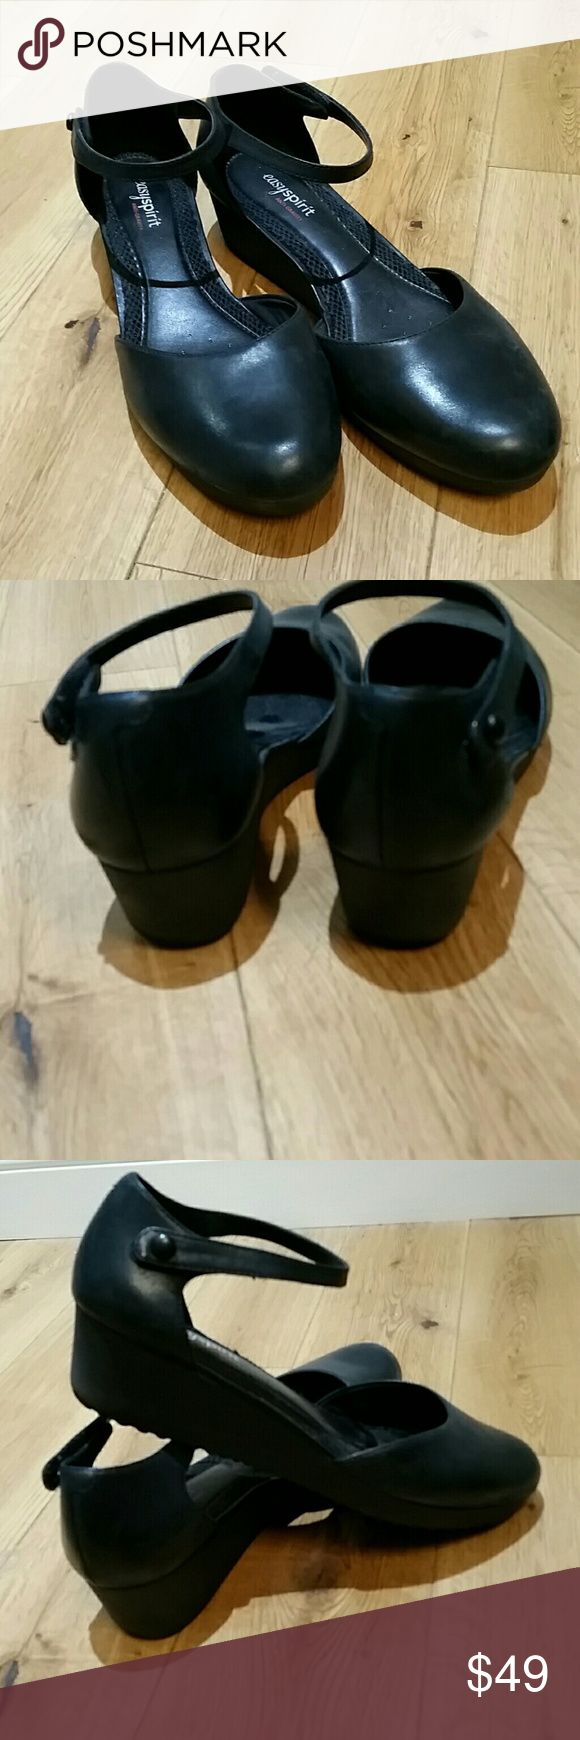 """Easy spirit anti gravity black shoes Easy spirit anti gravity black low wedge shoe. Velcro button around the ankle. About 1 1/2 """" heel. I only wore them around the house. Easy Spirit Shoes Wedges"""